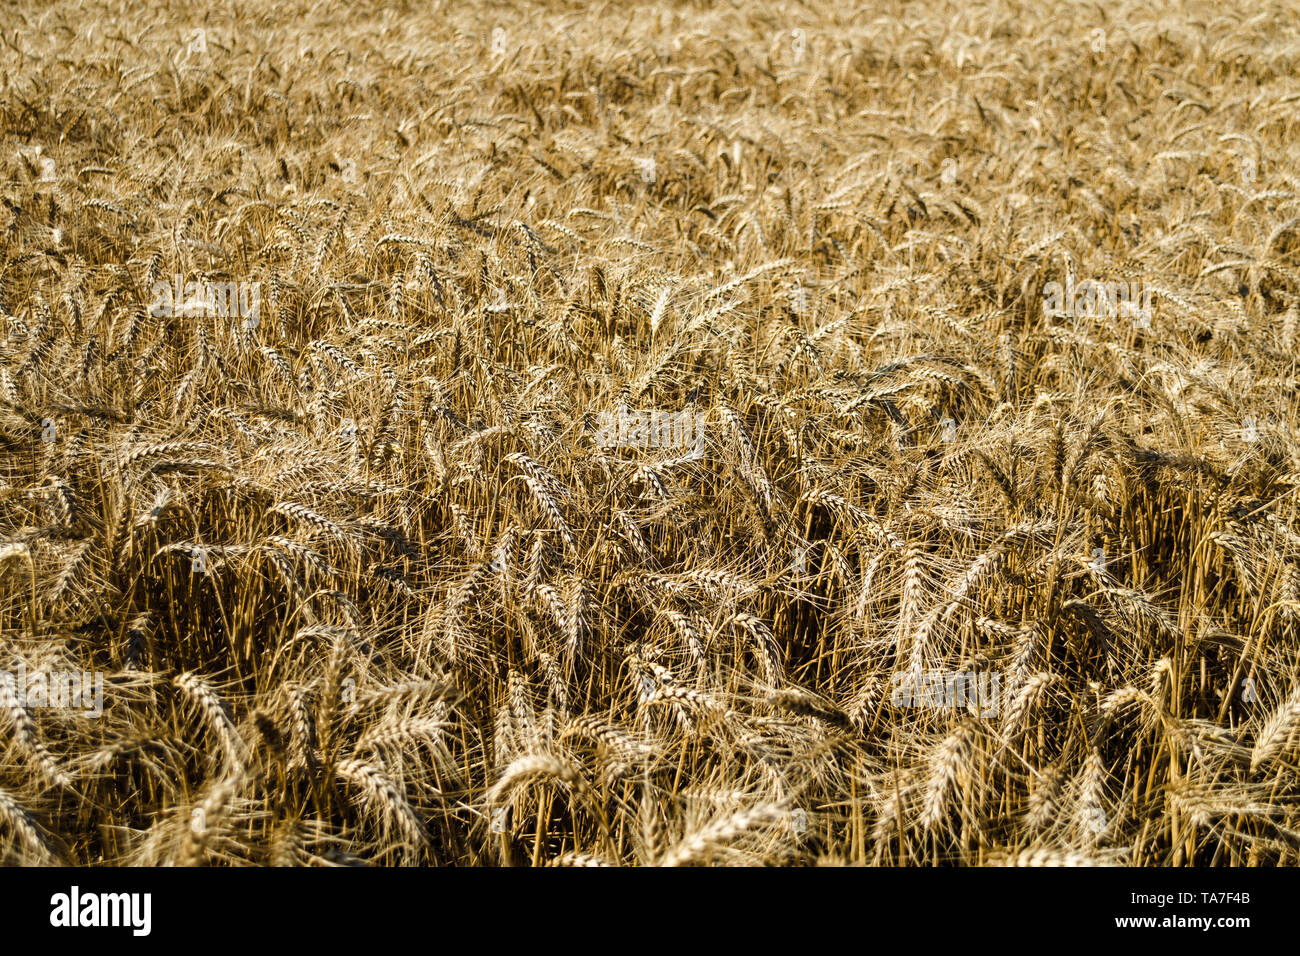 Wide field of golden wheat in summer sunny day. Season of a harvesting. Close up of corn field ready for harvest. Design background. Copy space for te - Stock Image